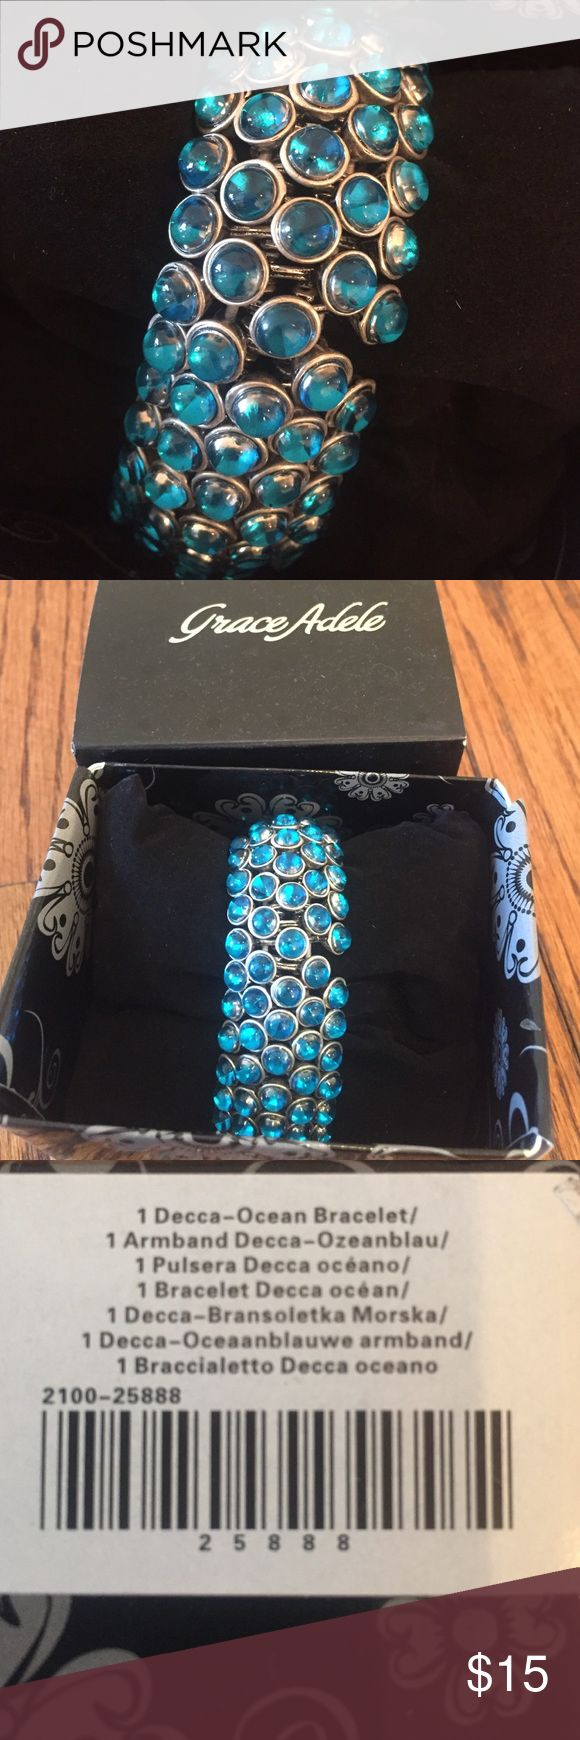 NEW Grace Adele Decca Bracelet NWT In Ocean Color Grace Adele Jewelry Bracelets